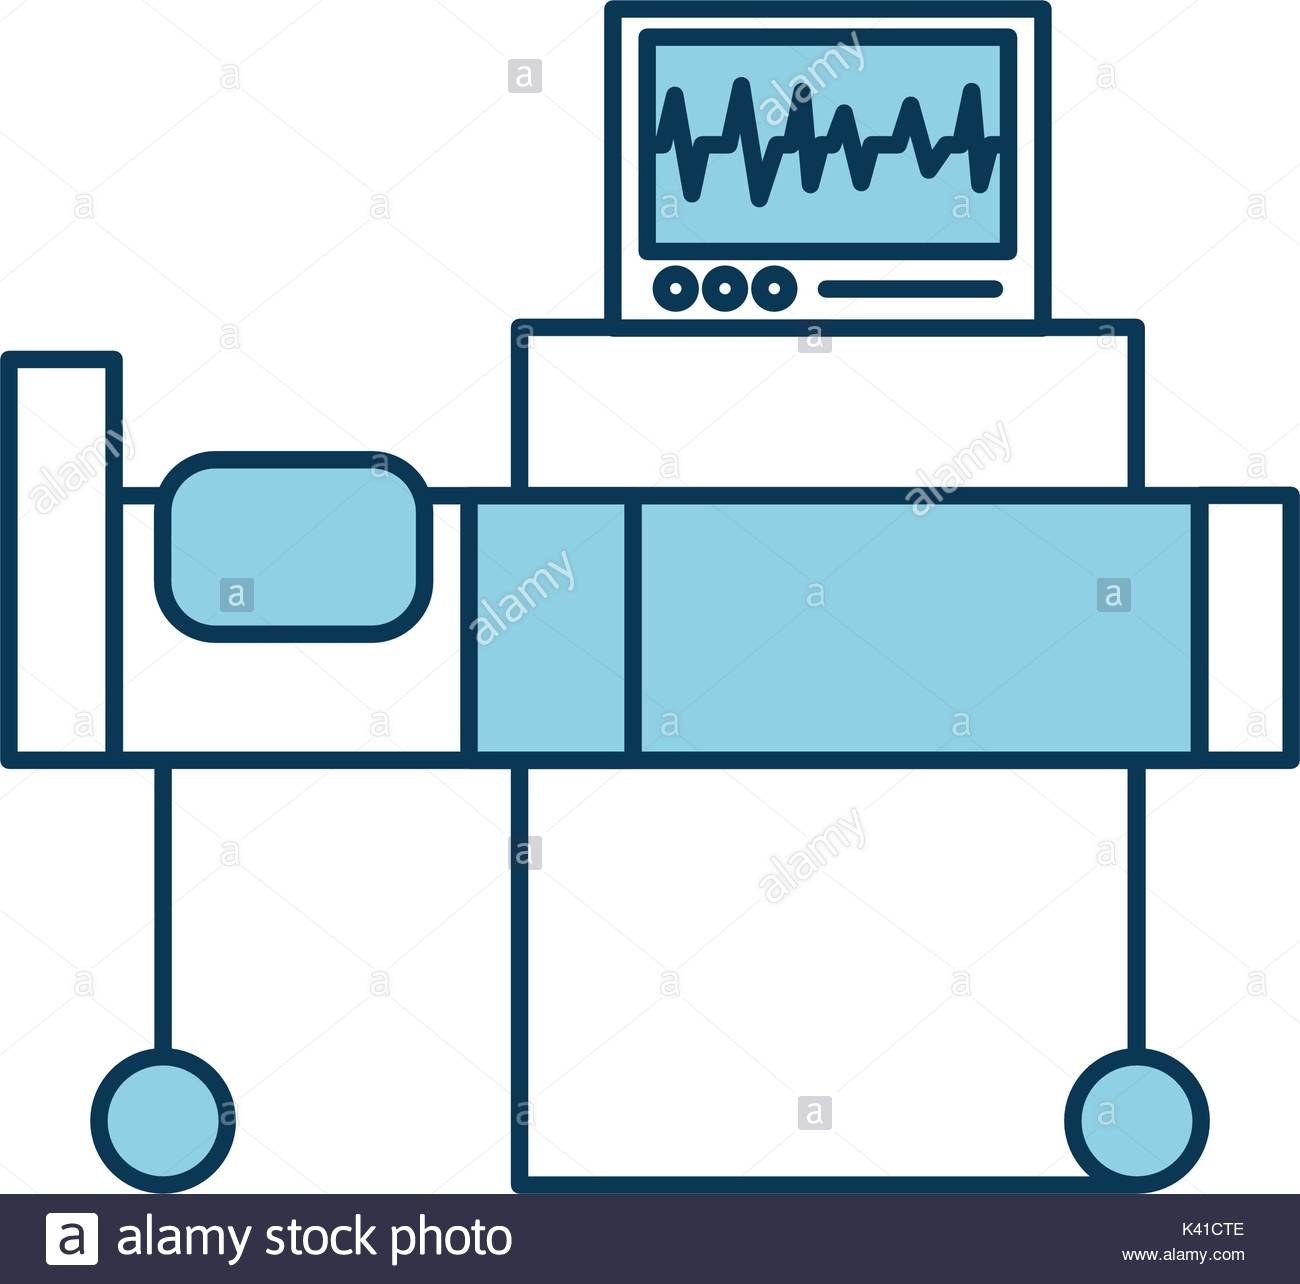 1300x1284 Heart Rate Monitor Stock Photos Amp Heart Rate Monitor Stock Images